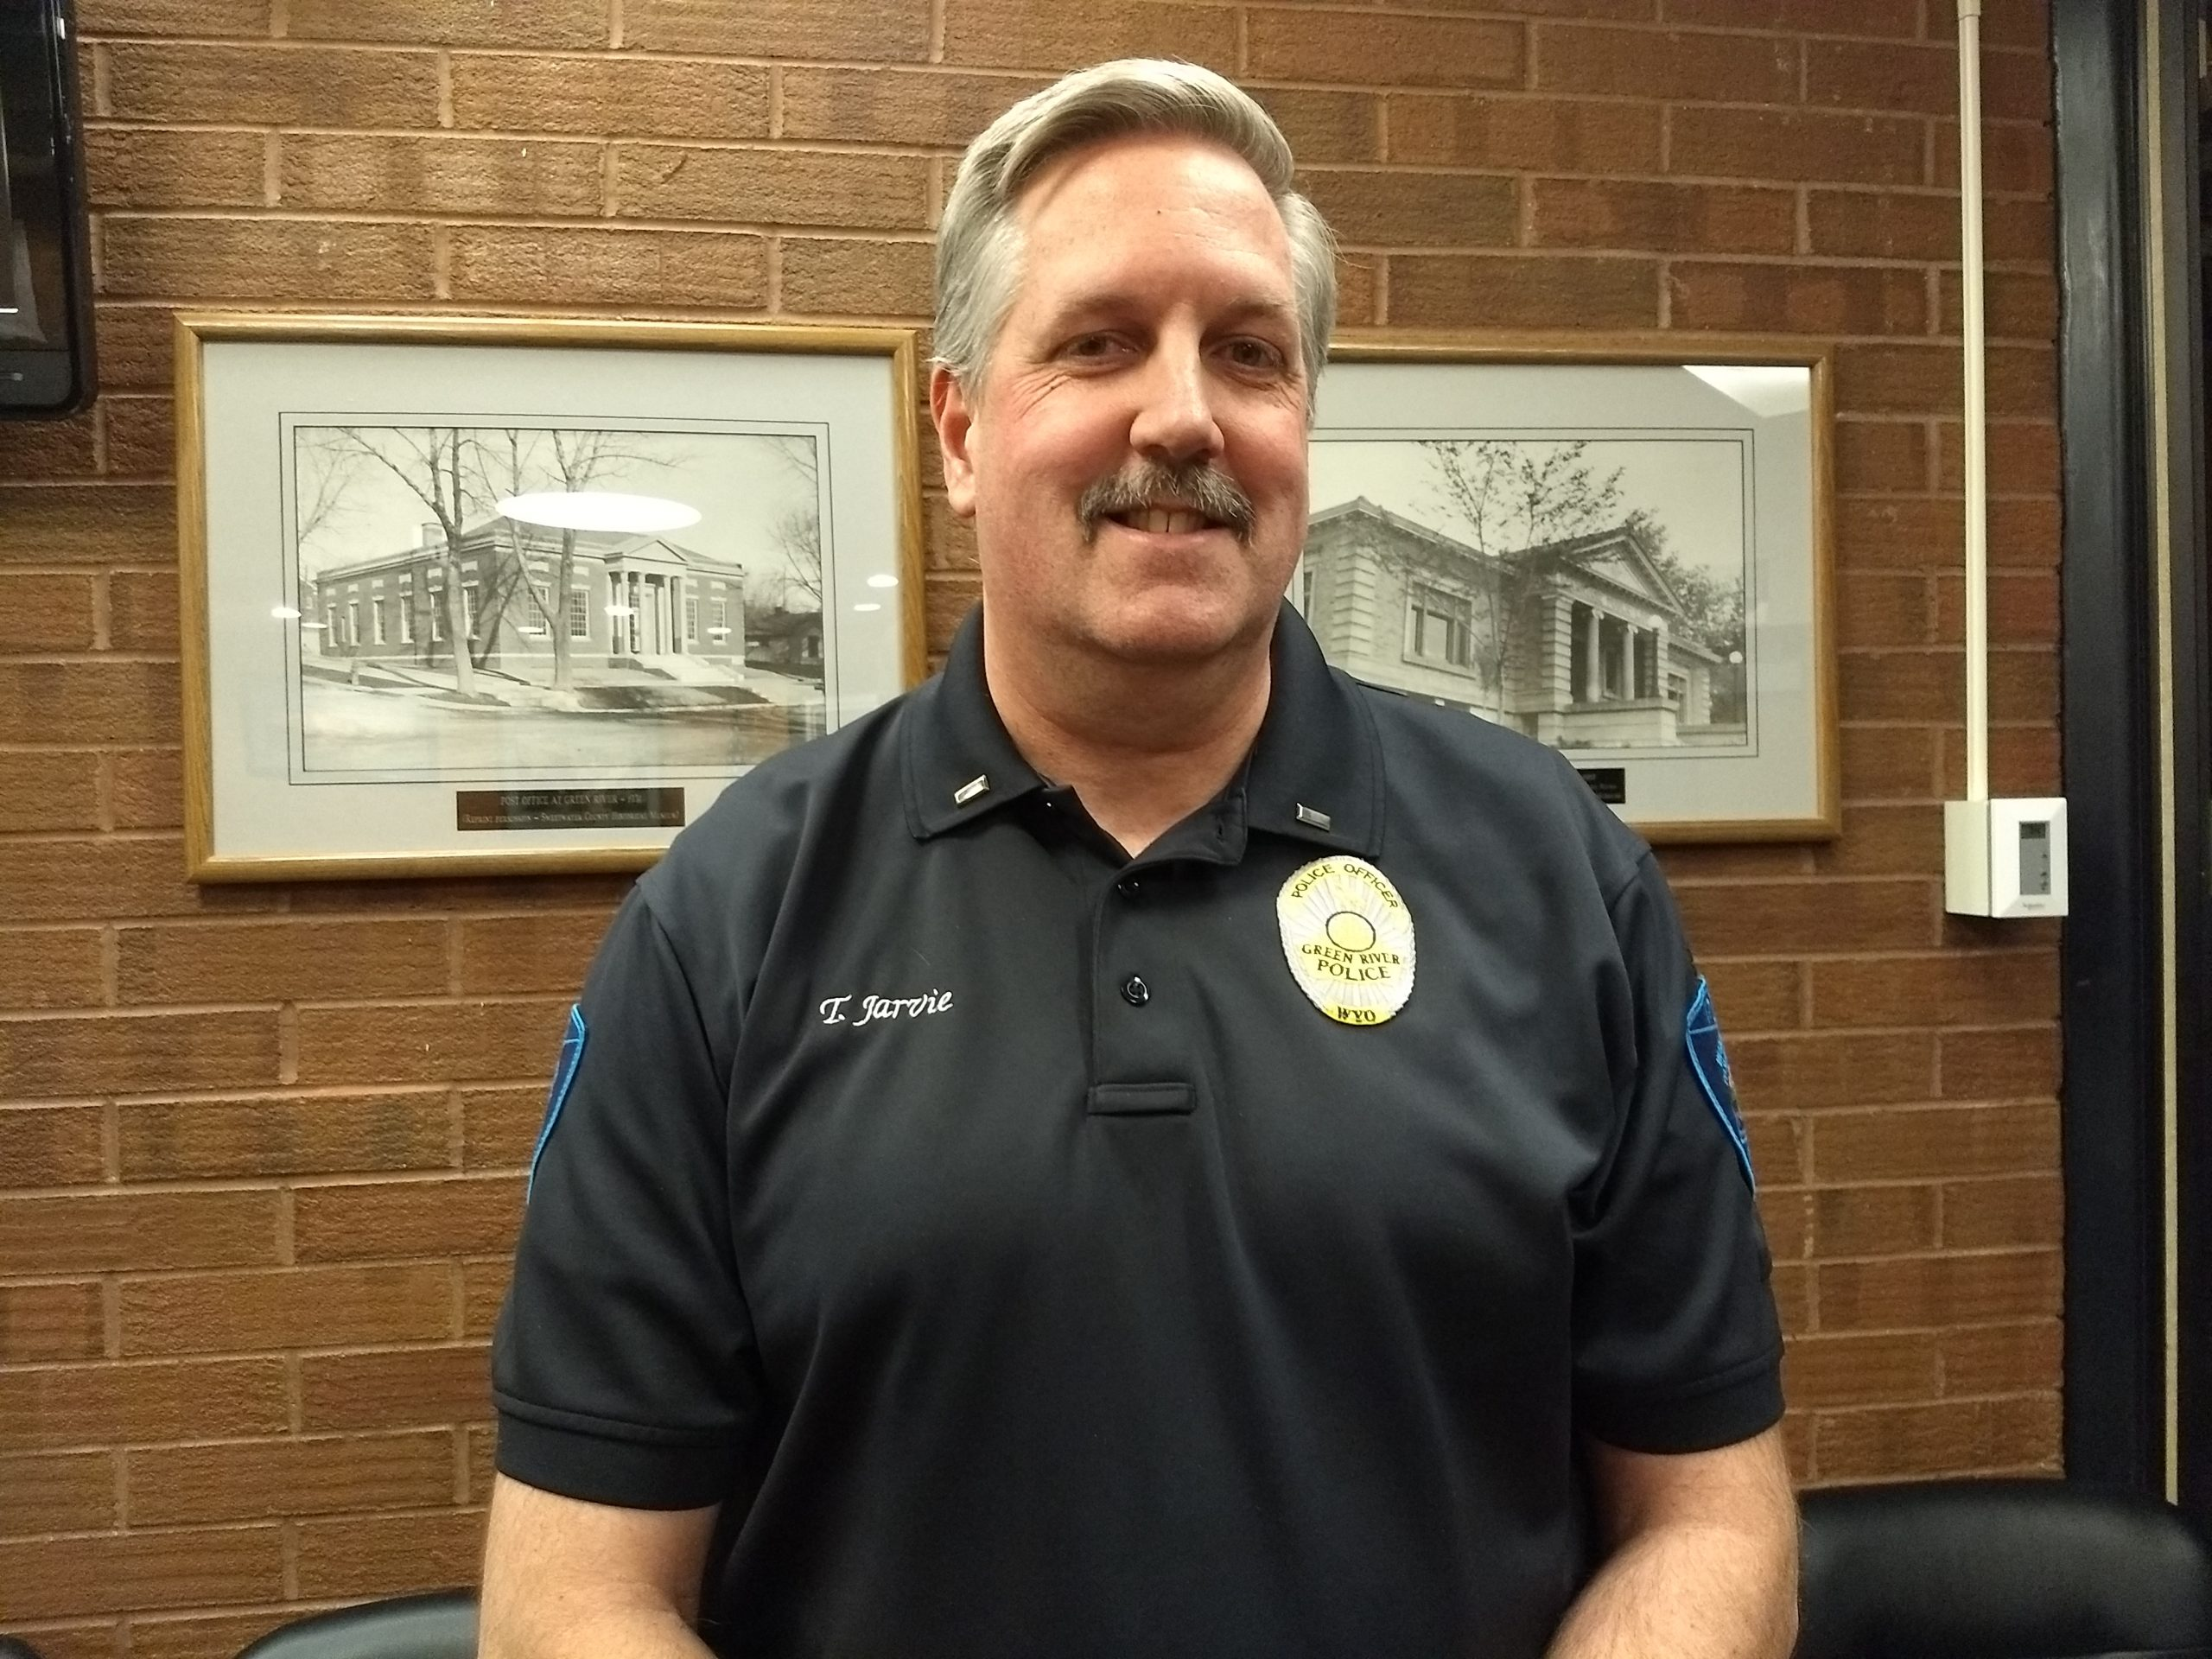 City of Green River Announces Tom Jarvie as New Police Chief